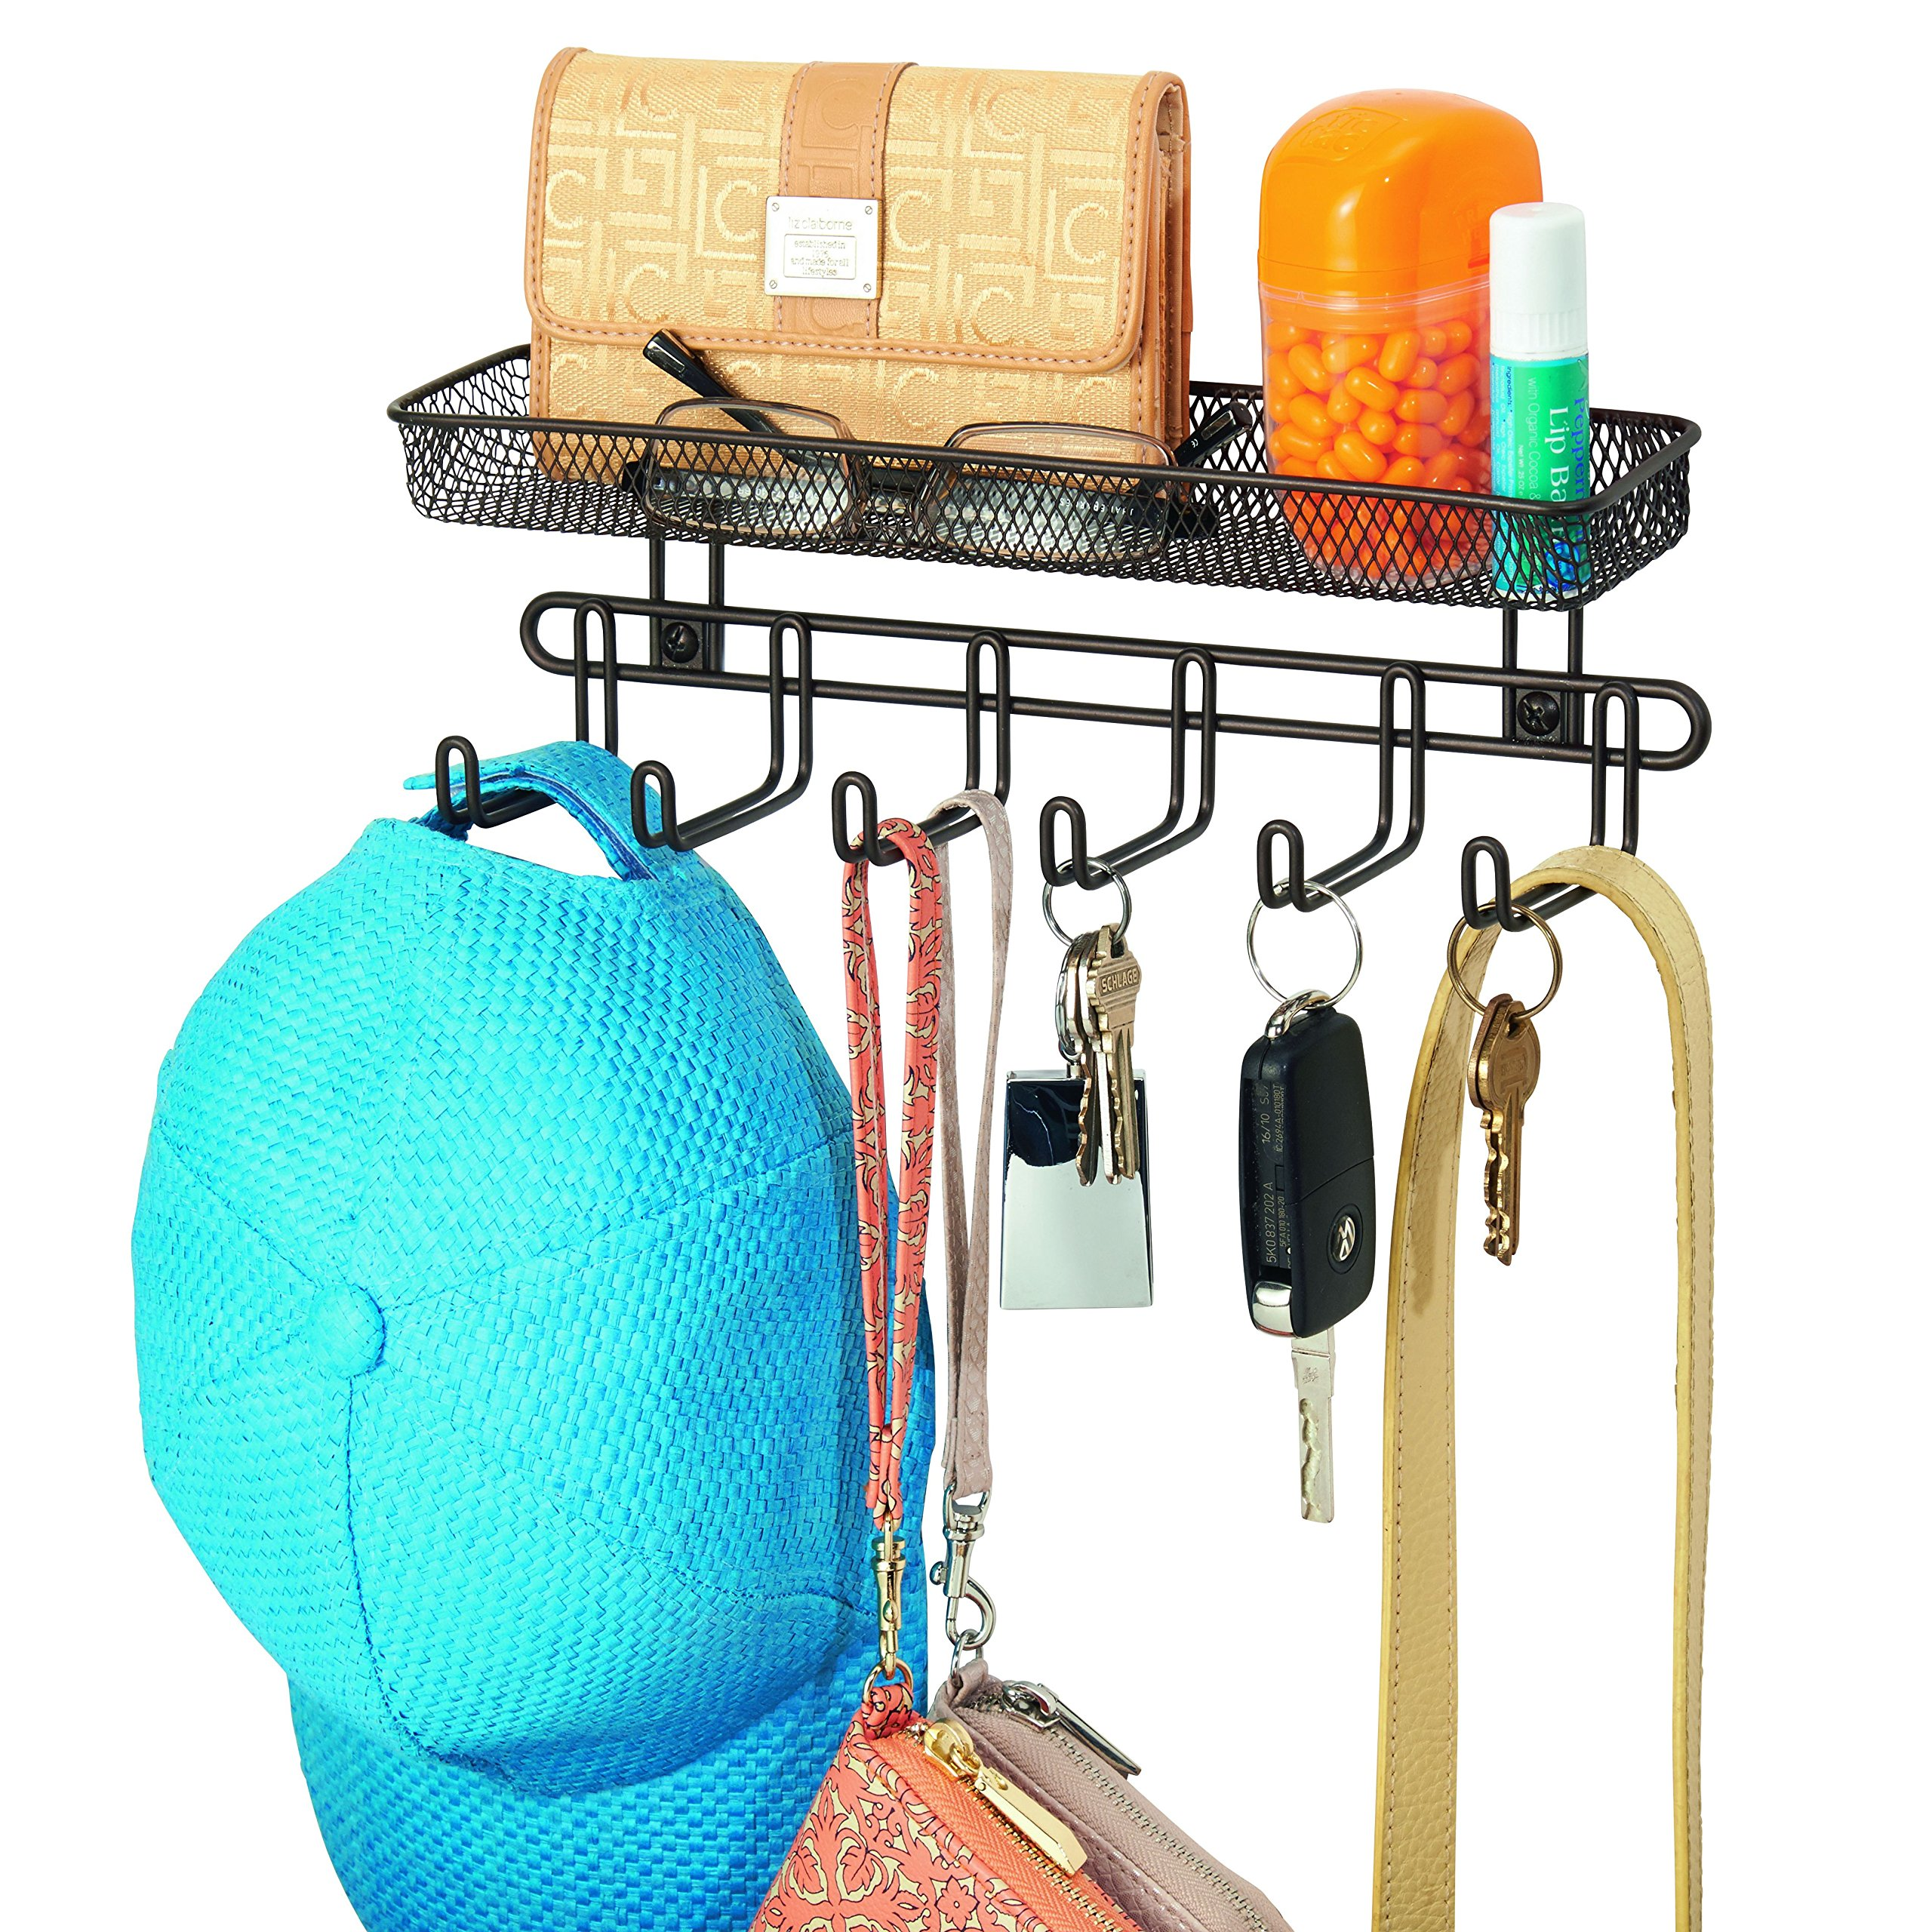 InterDesign Classico Wall Mount Entryway Organizer for Keys, Hats, Wallets, Clutch Purses, Cell Phones, Sunglasses - 11'', Bronze